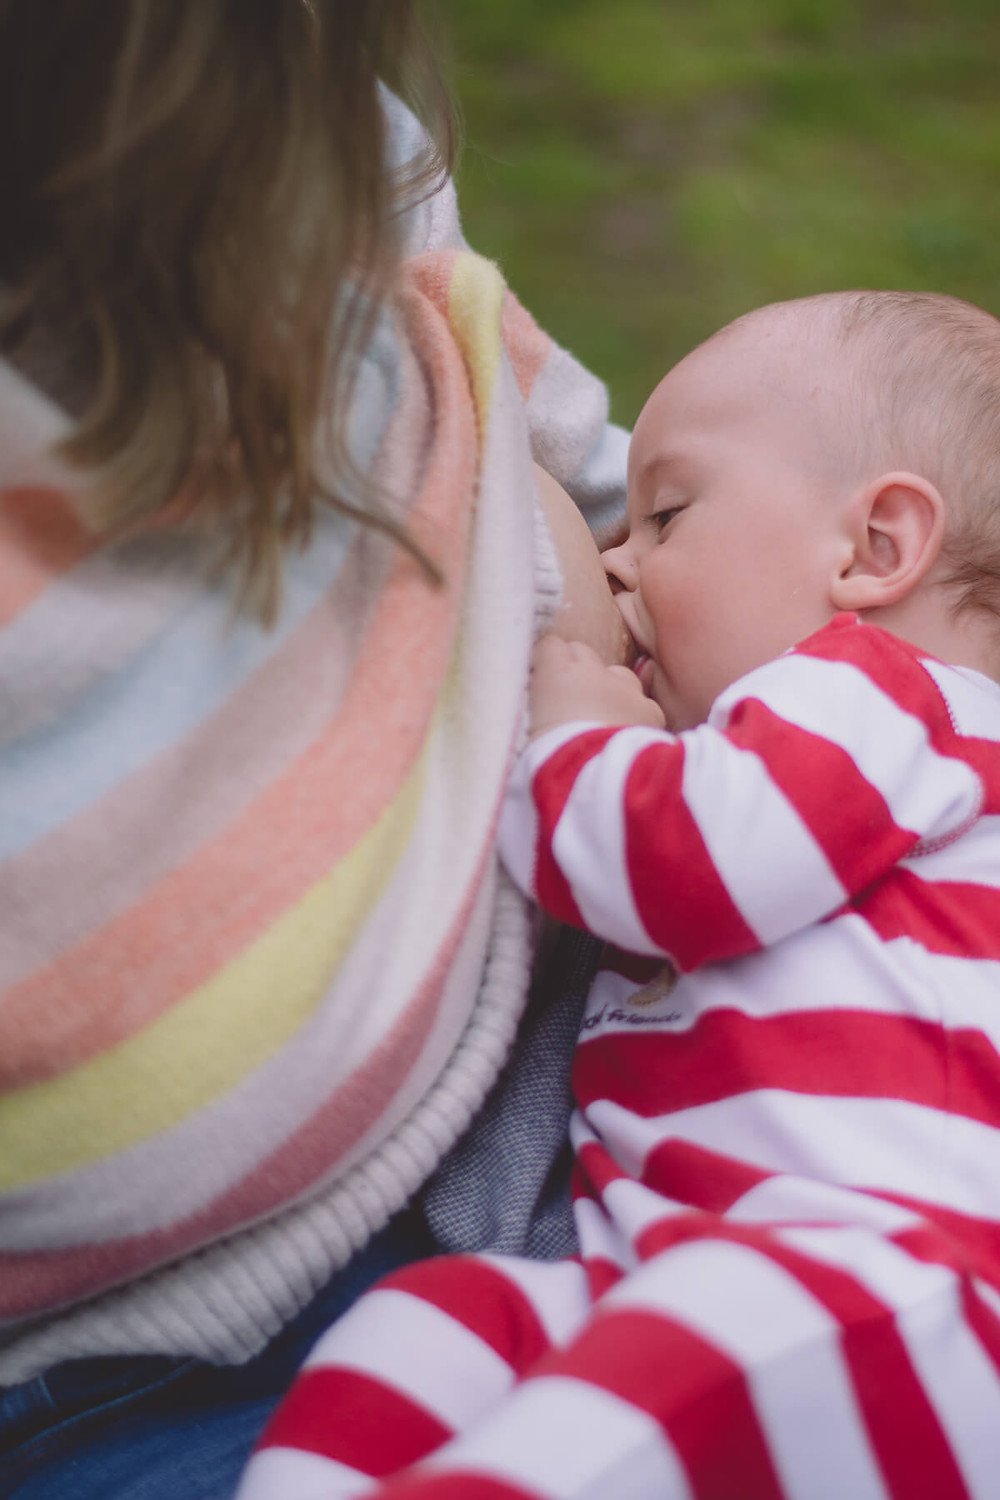 baby nursing on breast motherhood photography south wales